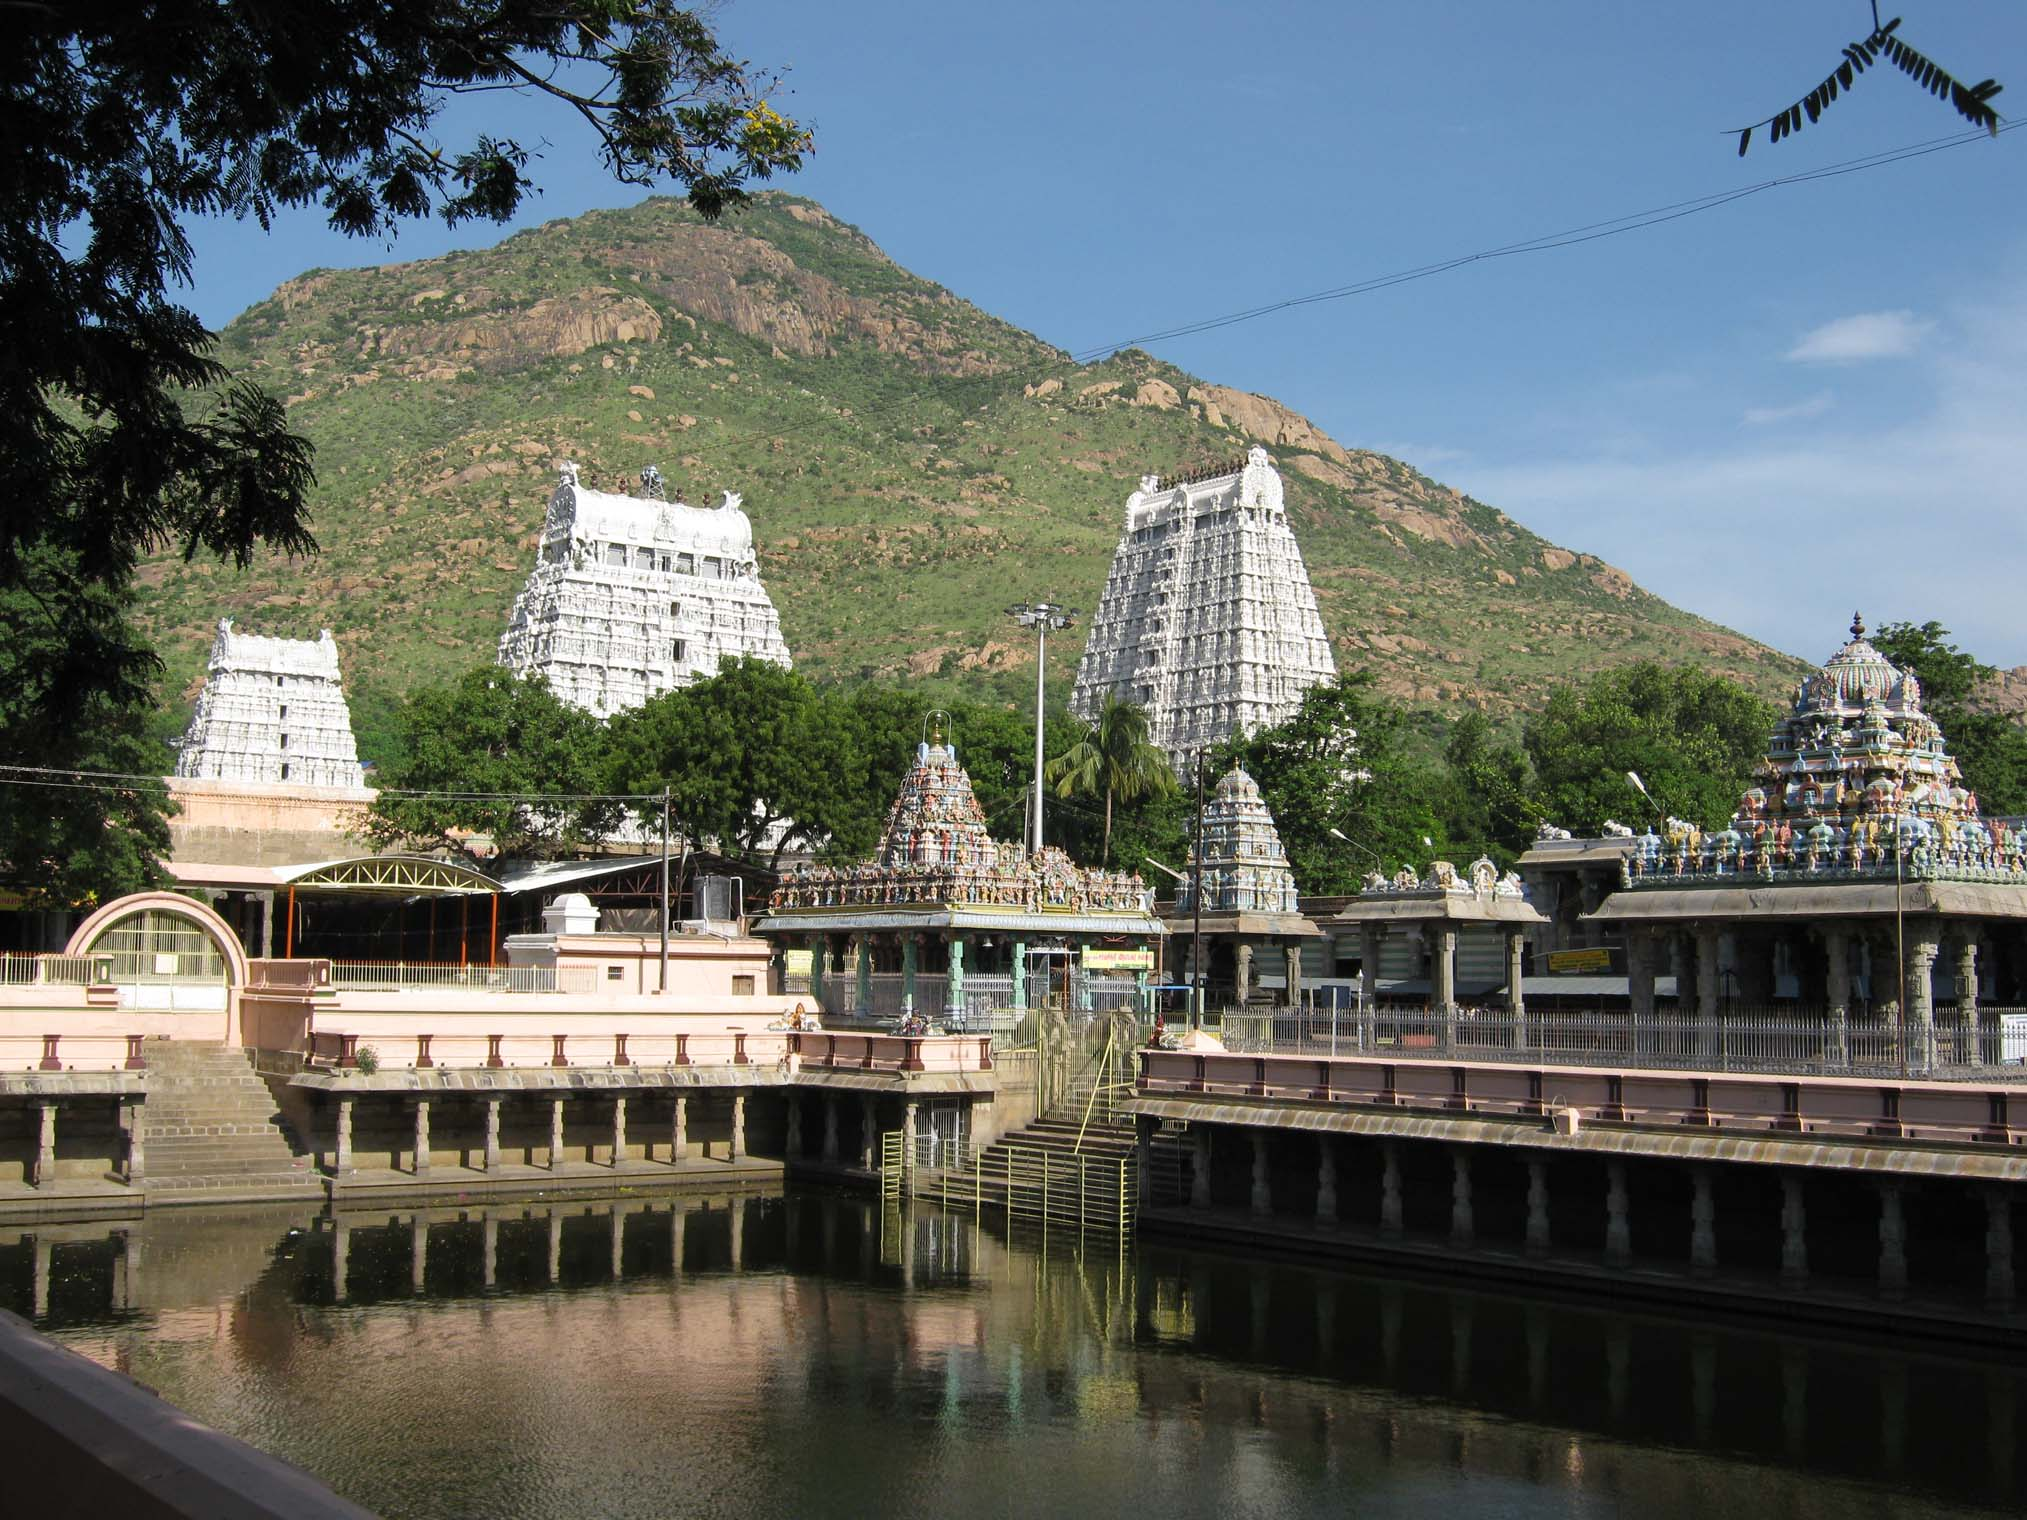 File:Tiruvannamalai Temple.jpg - Wikimedia Commons